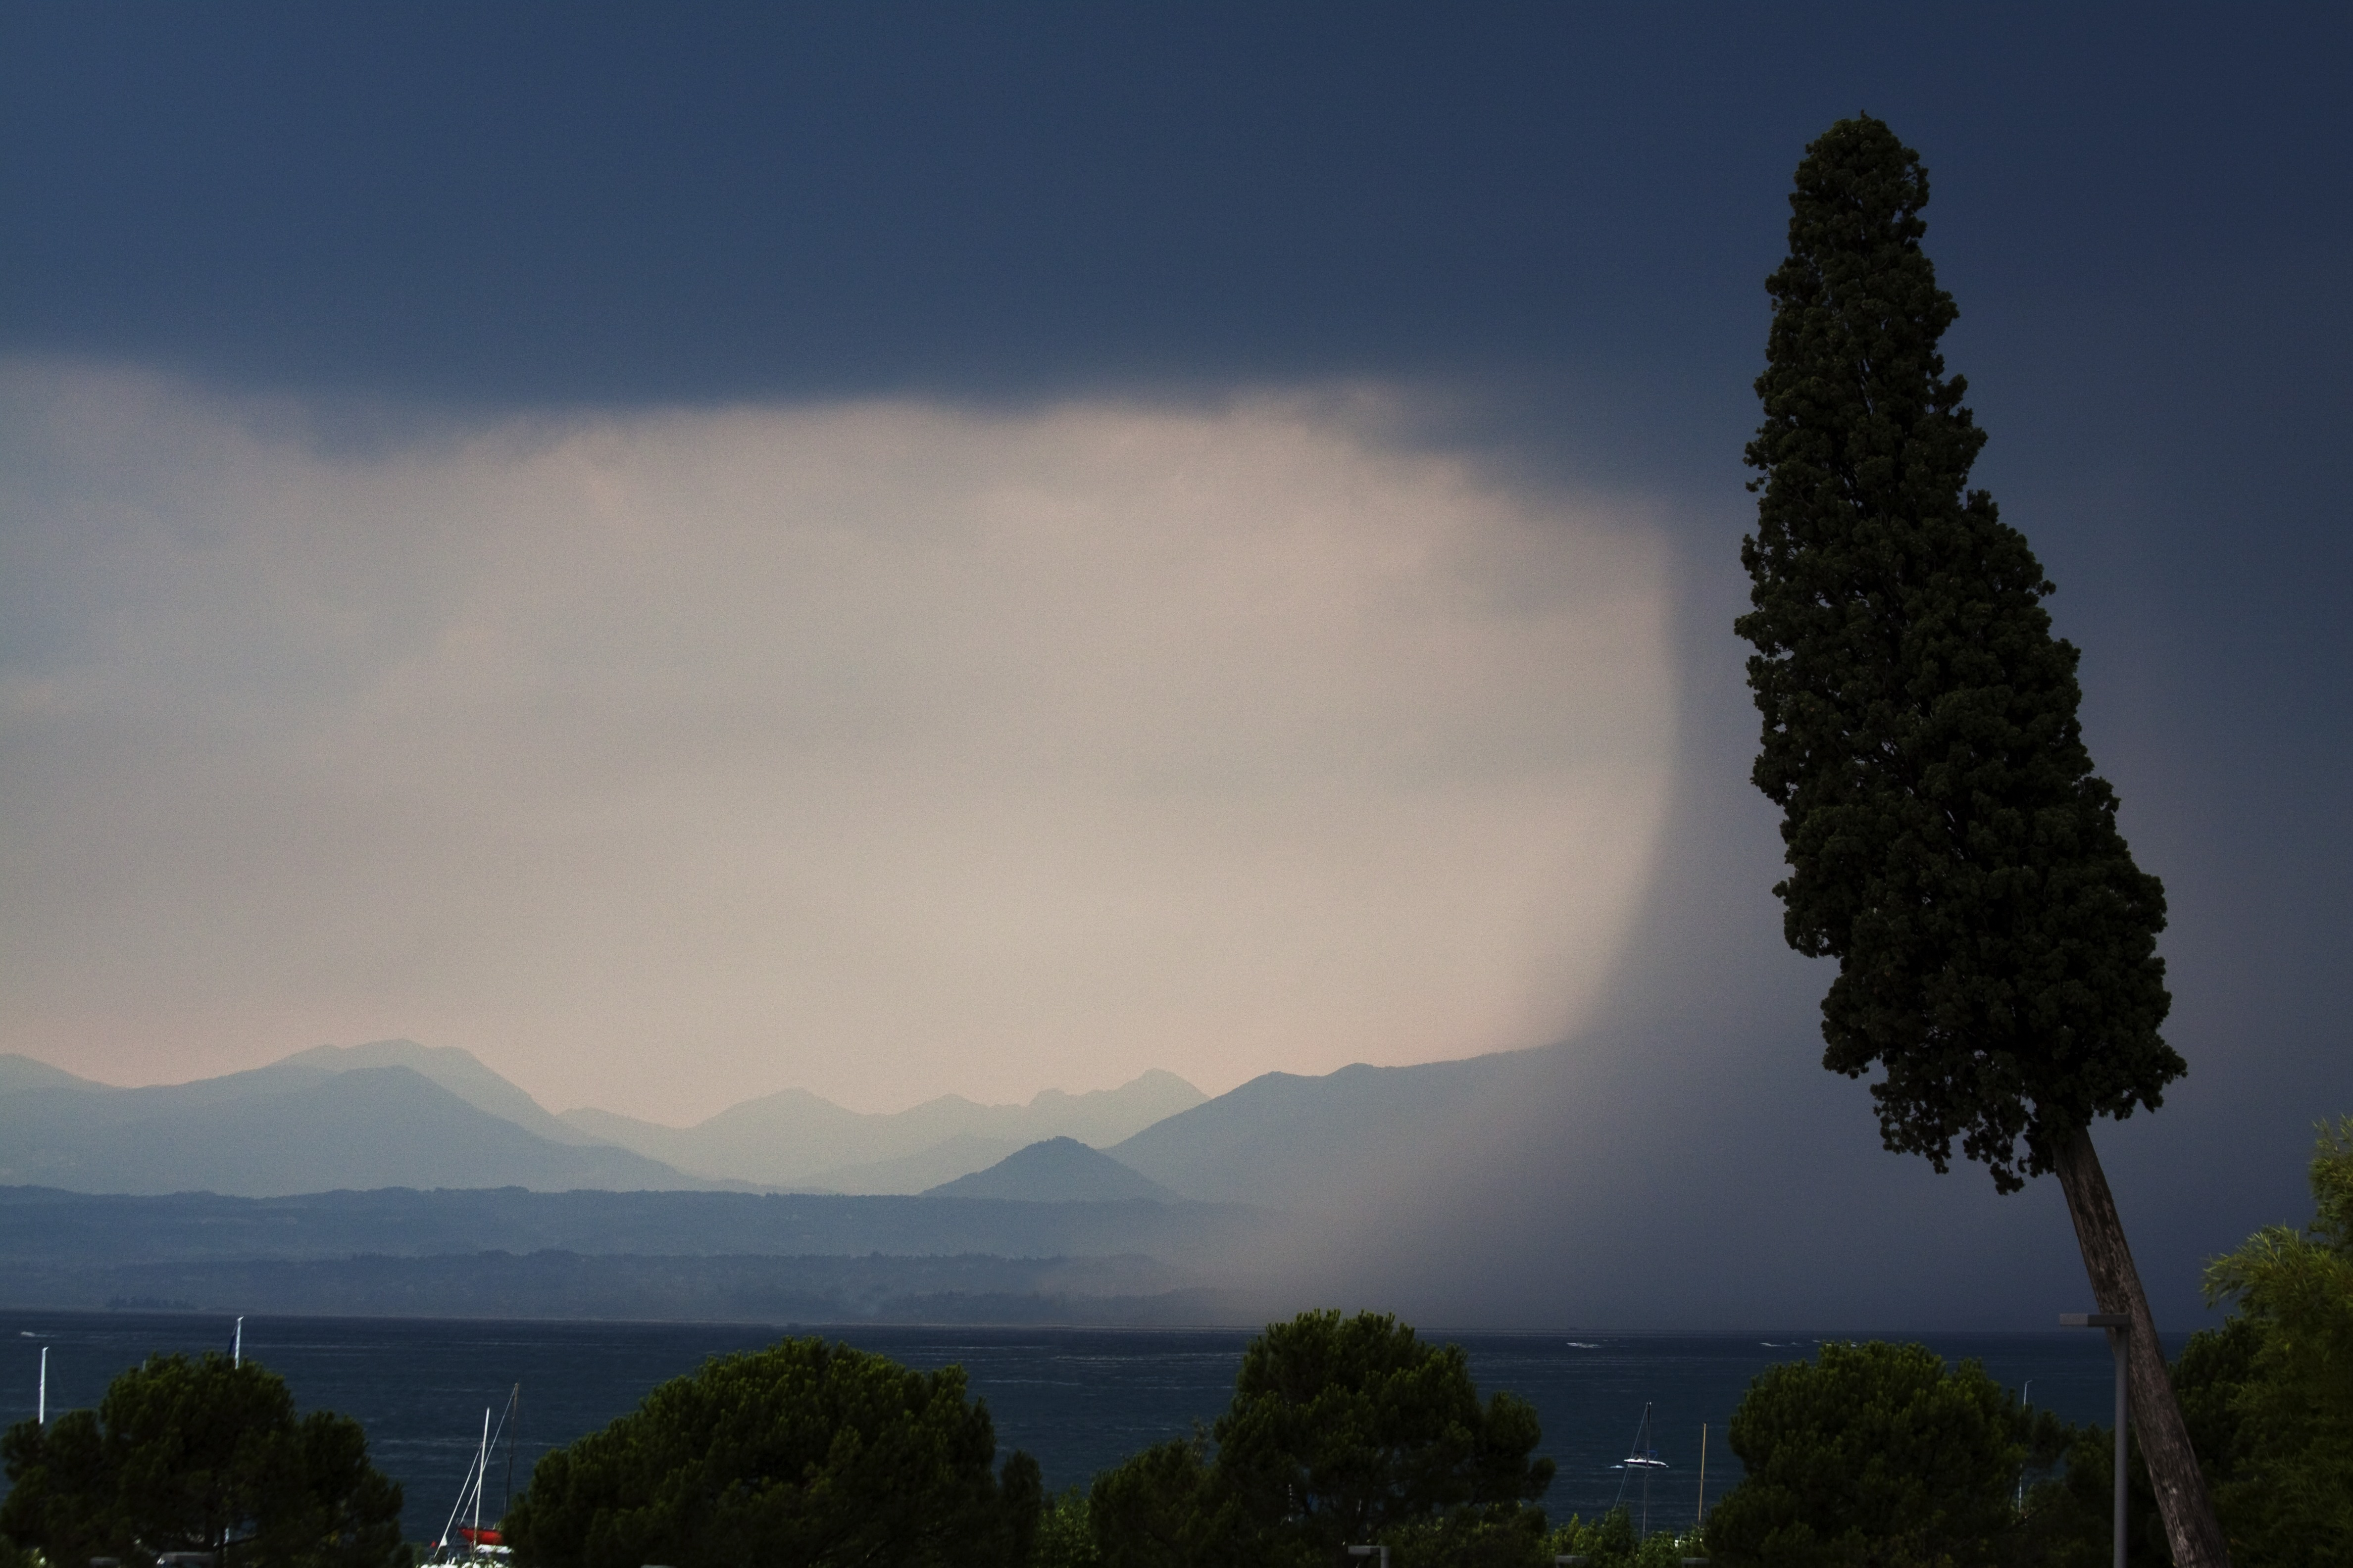 Storm coming photo